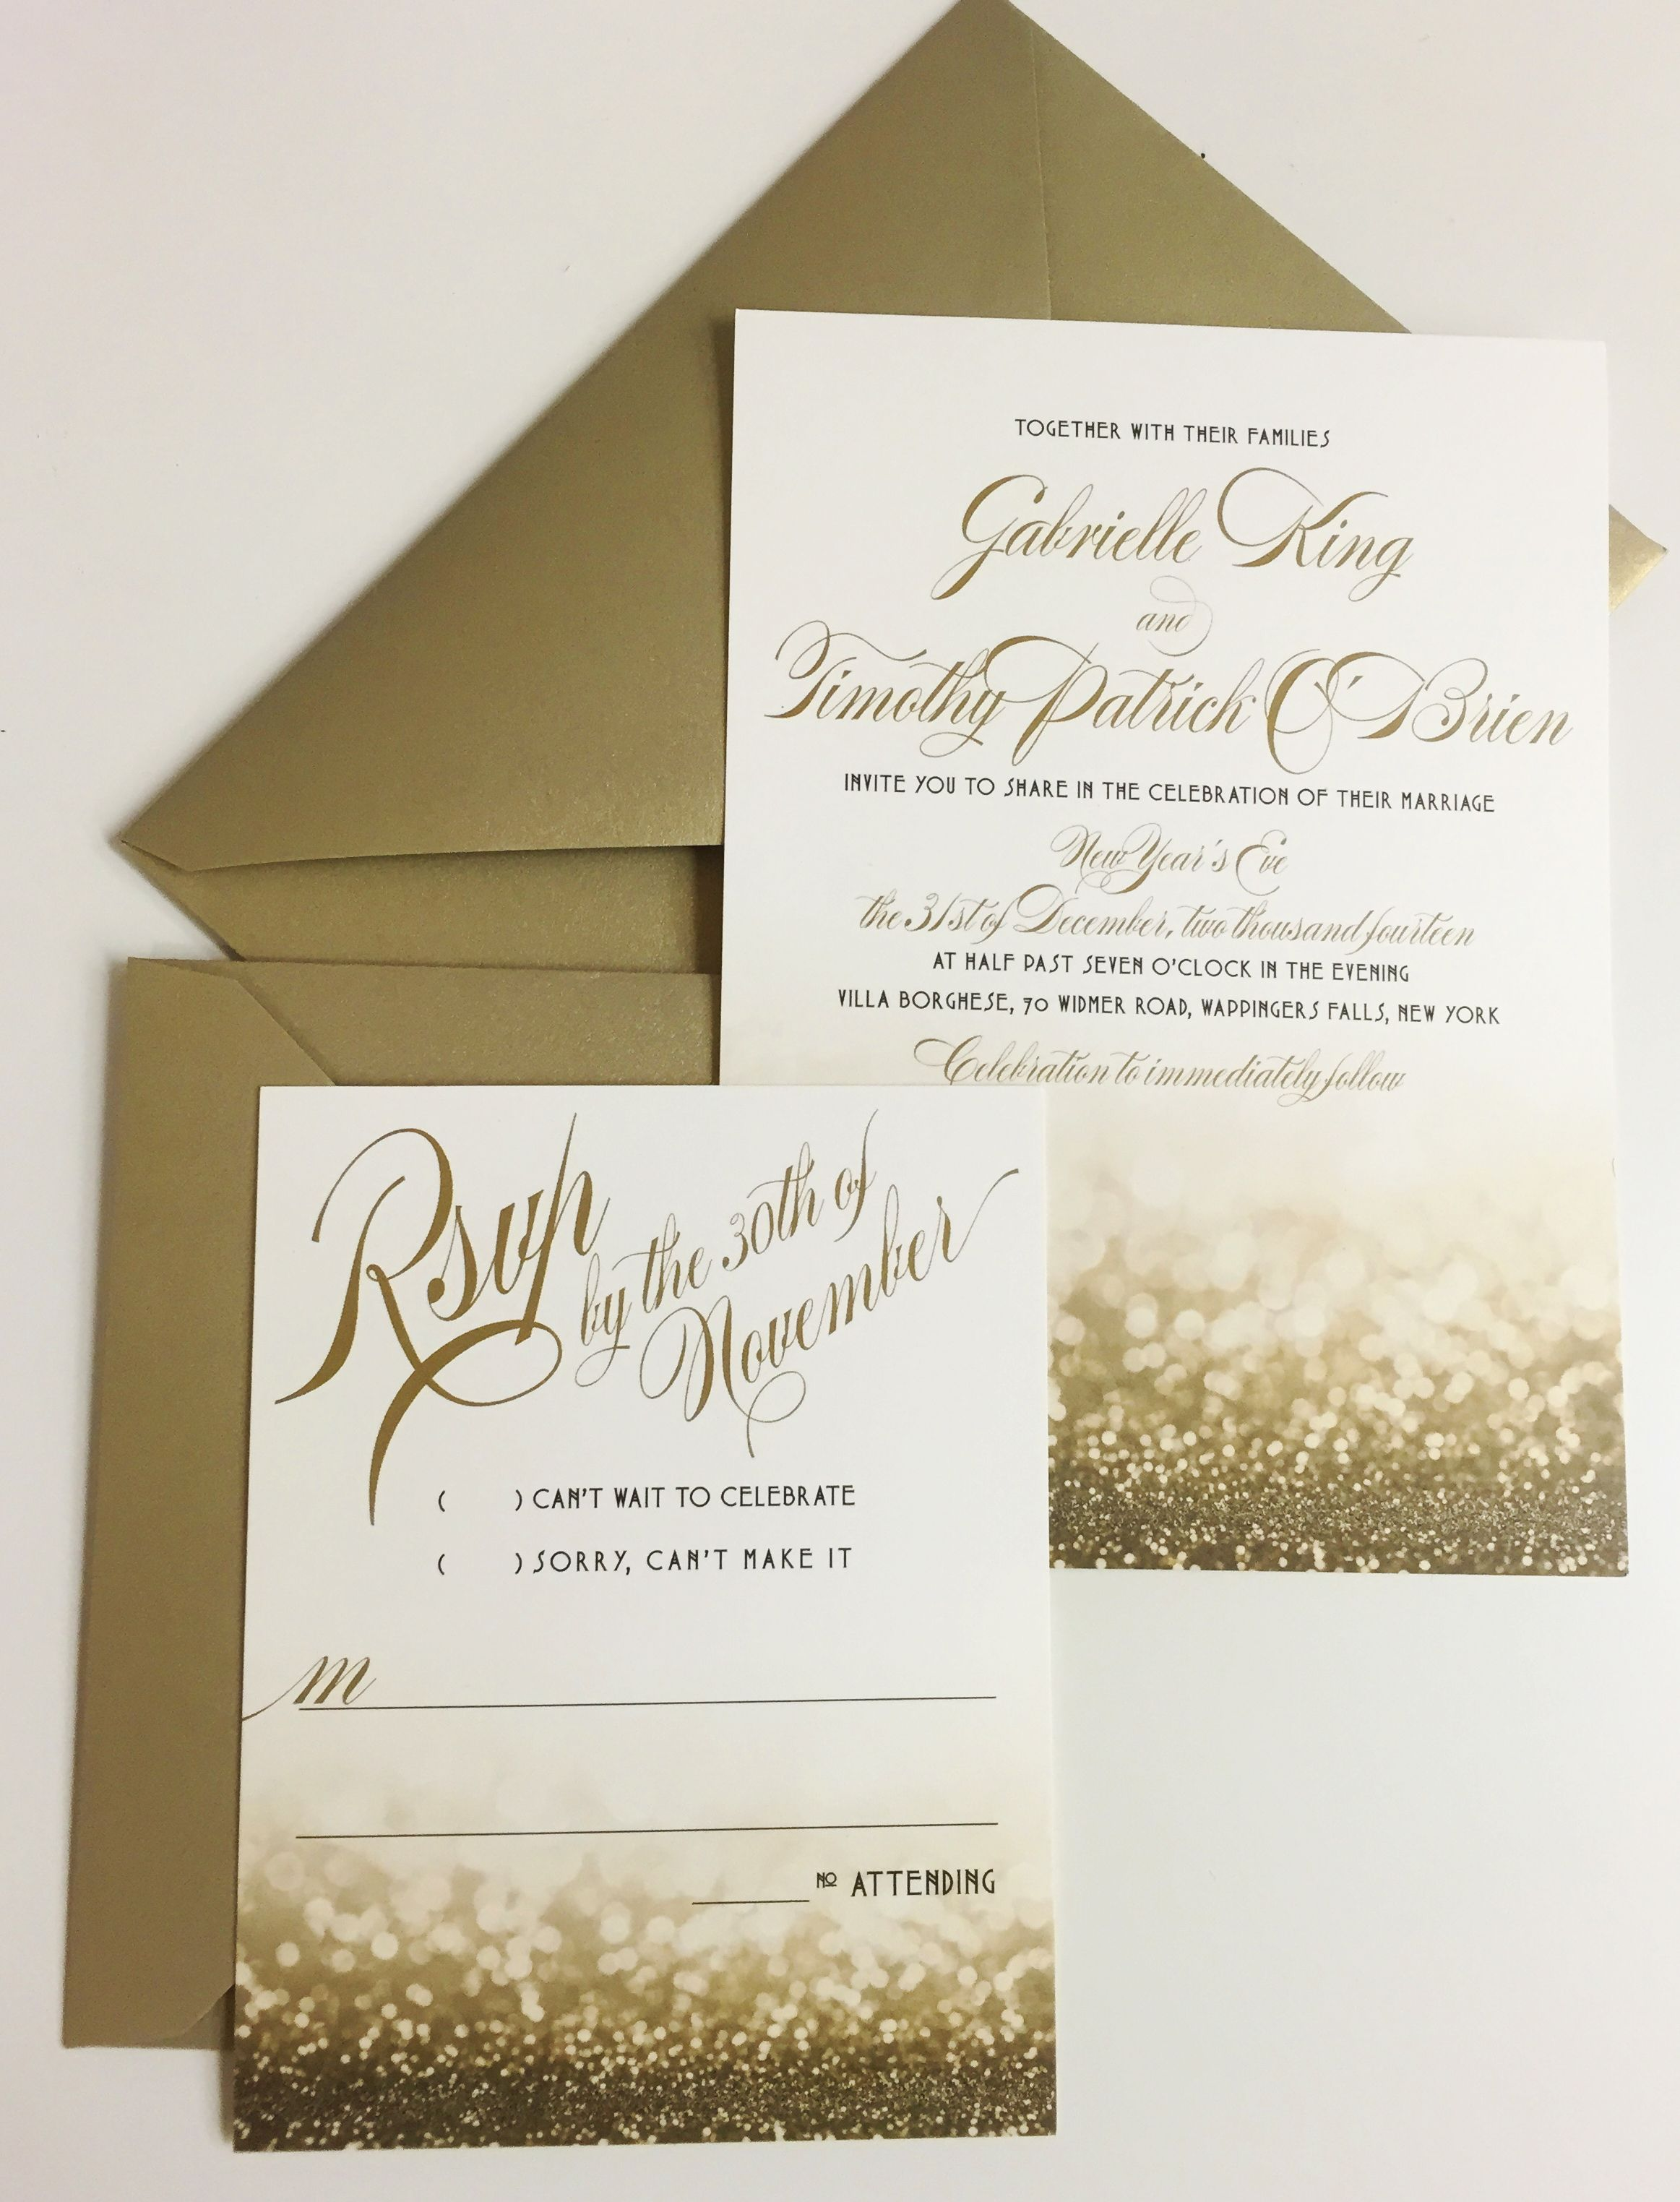 New Year's Eve Wedding Invitation. Gold With Glittery